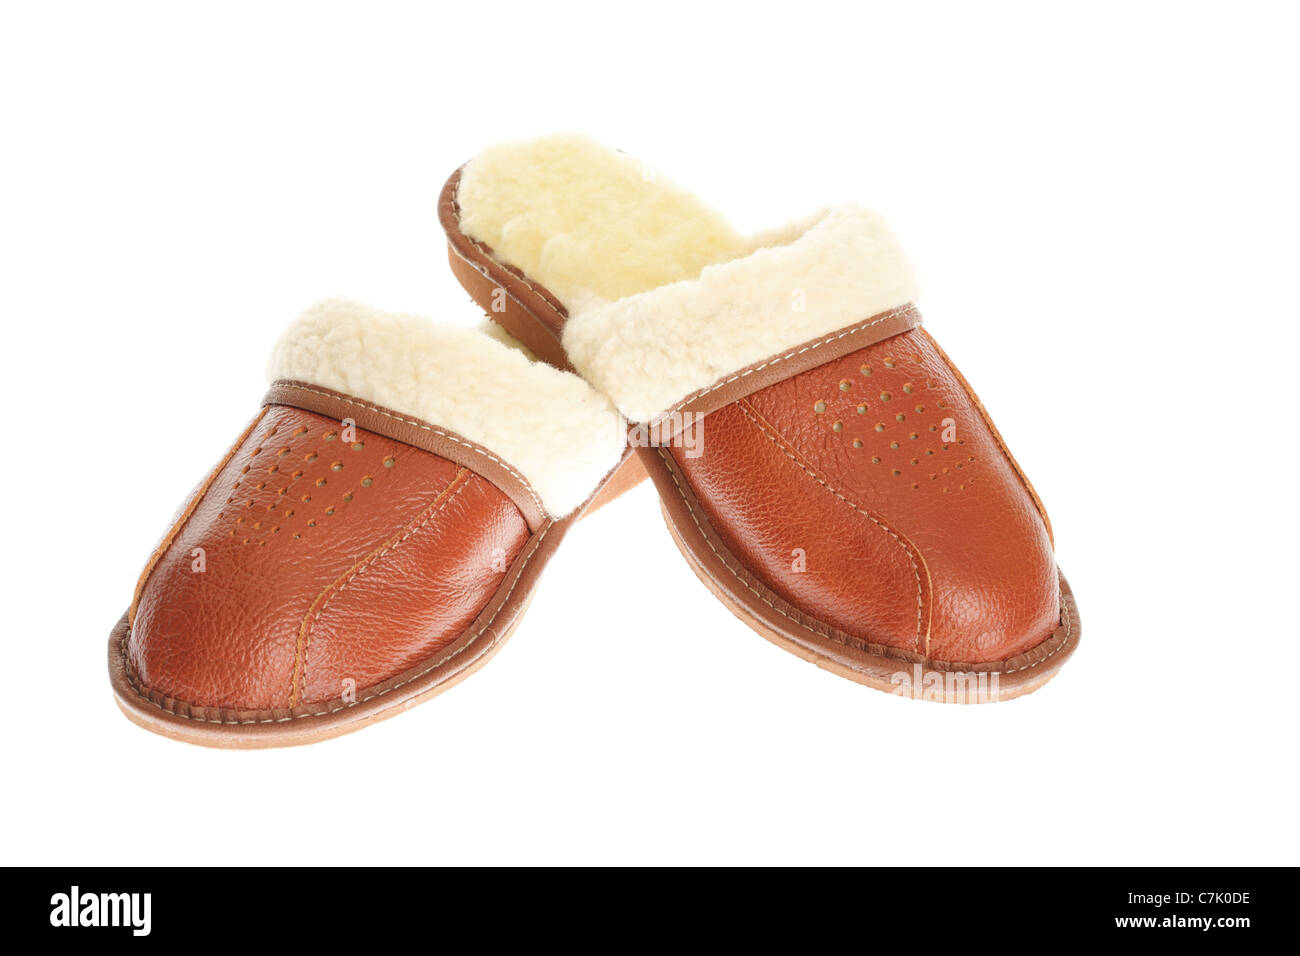 e9f0963c3bd brown wool comfortable slippers - house slipper isolated on white background